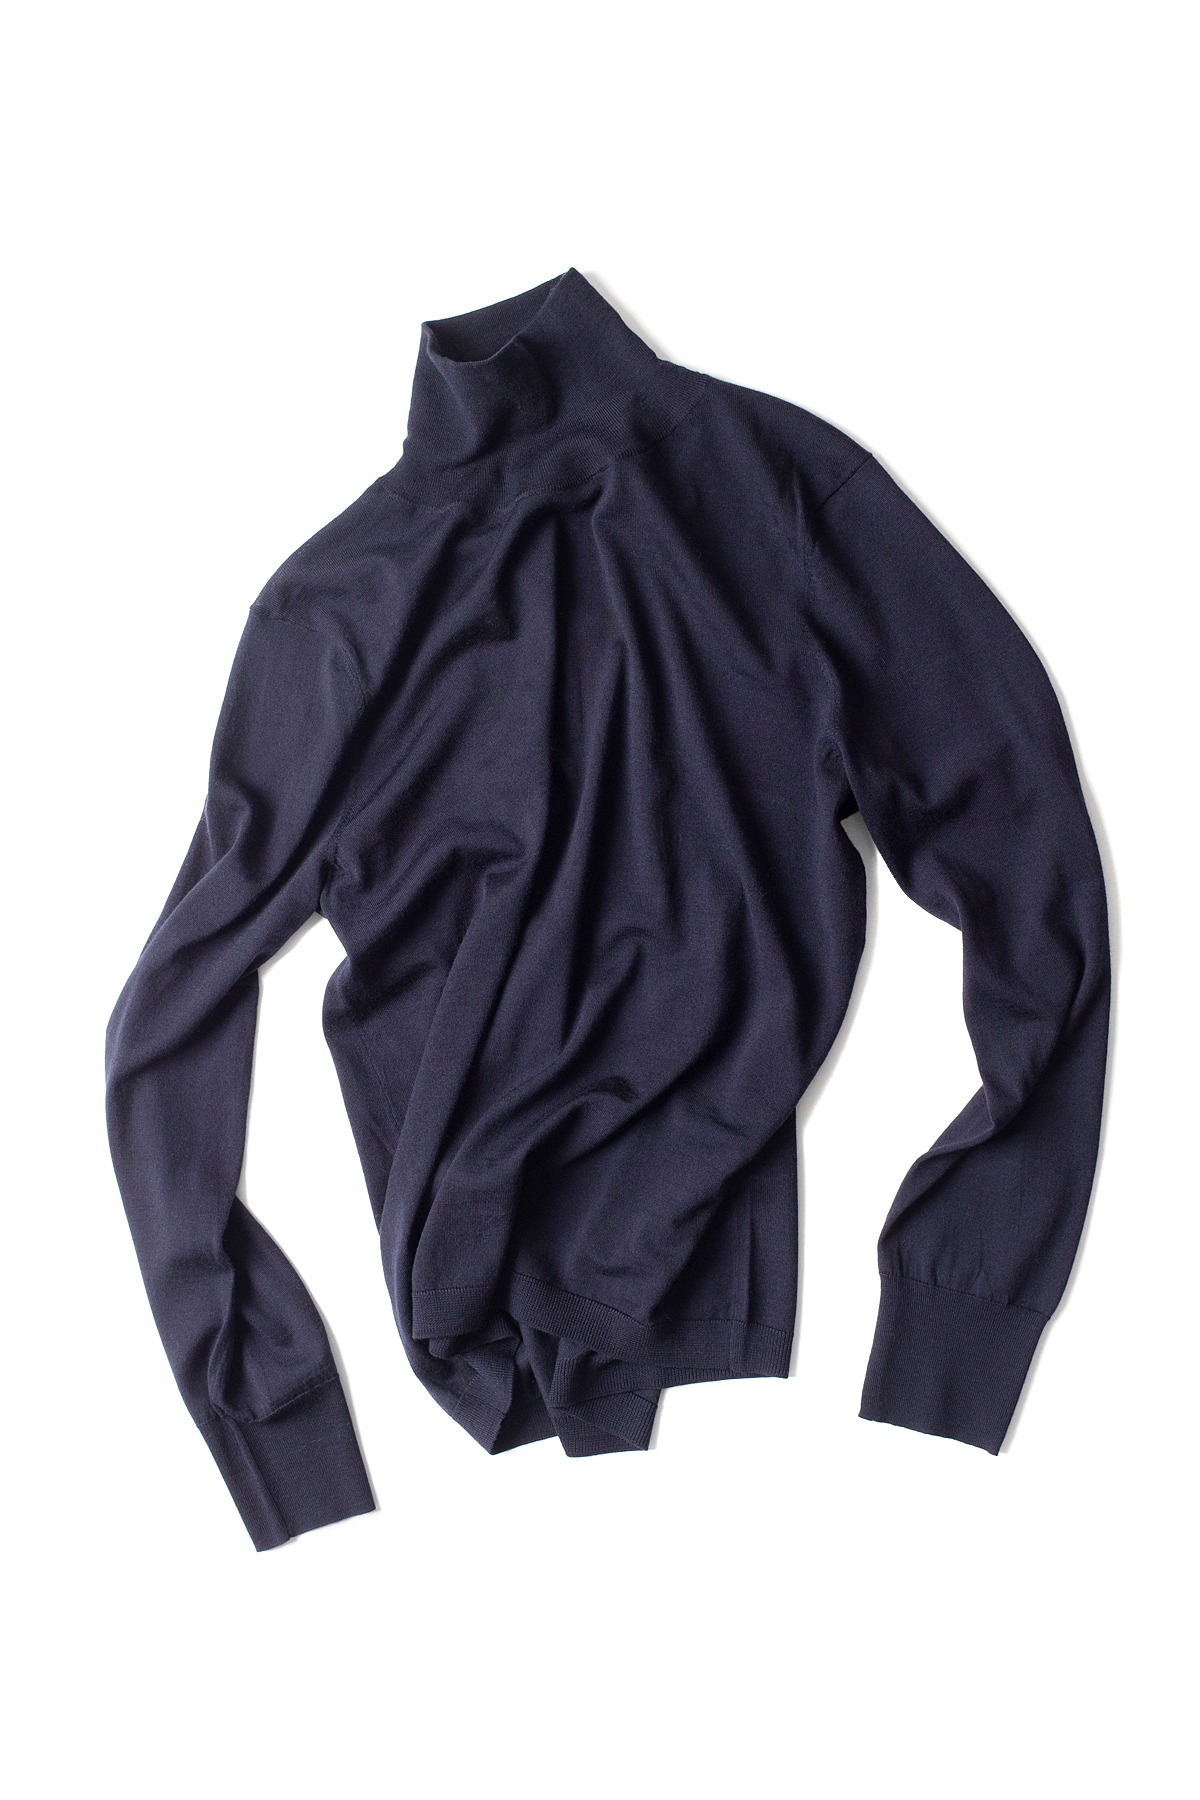 STUDIO NICHOLSON : Turtleneck (Navy)